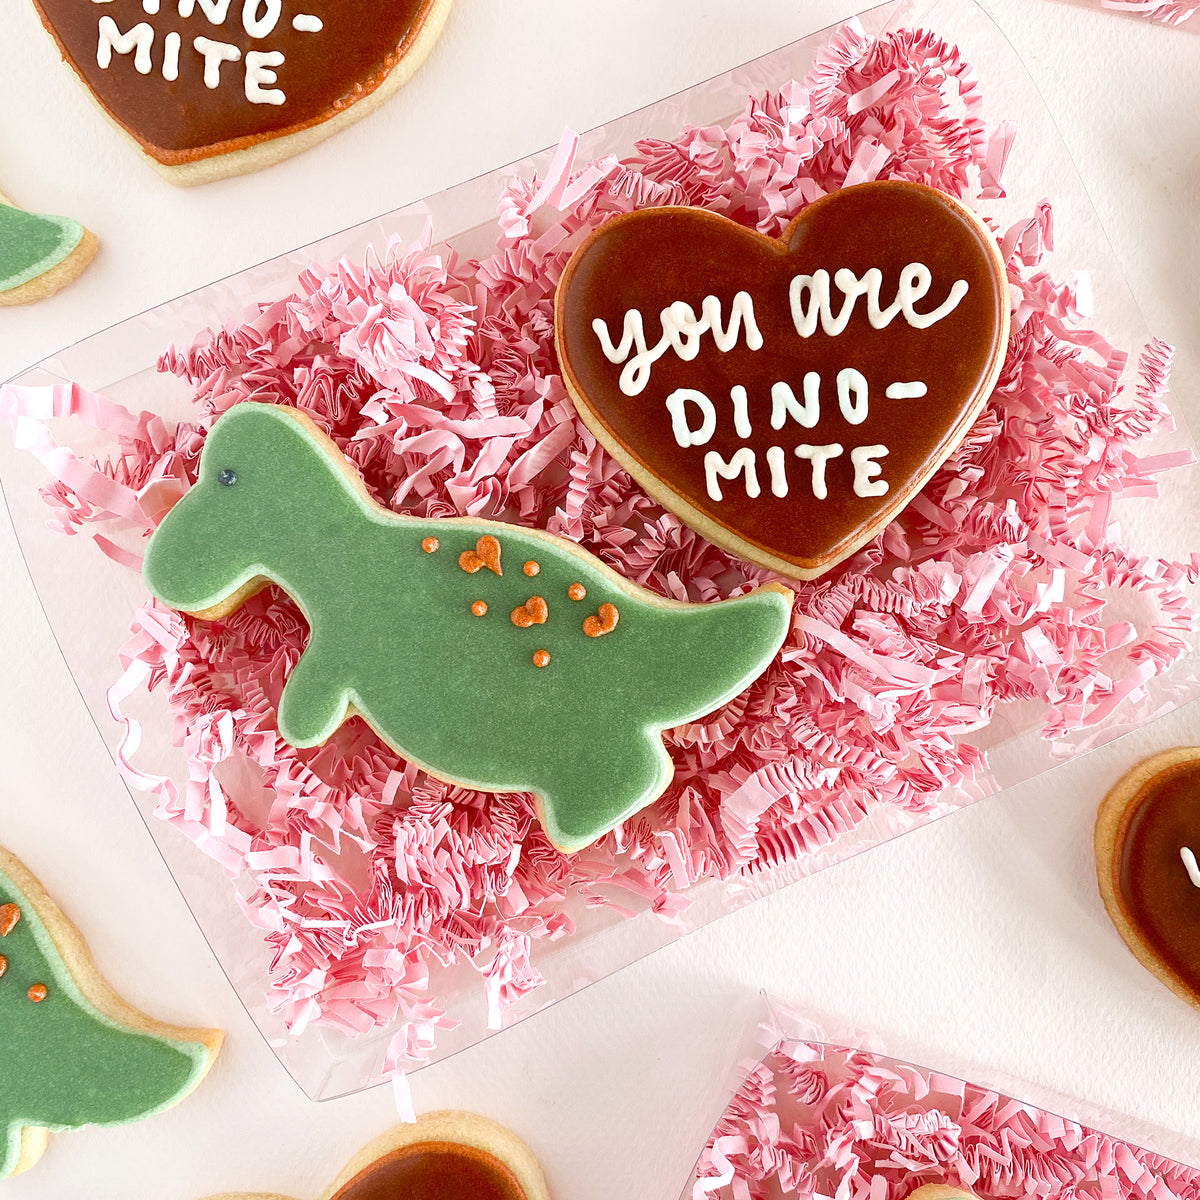 Dino-Mite Sugar Cookie Set